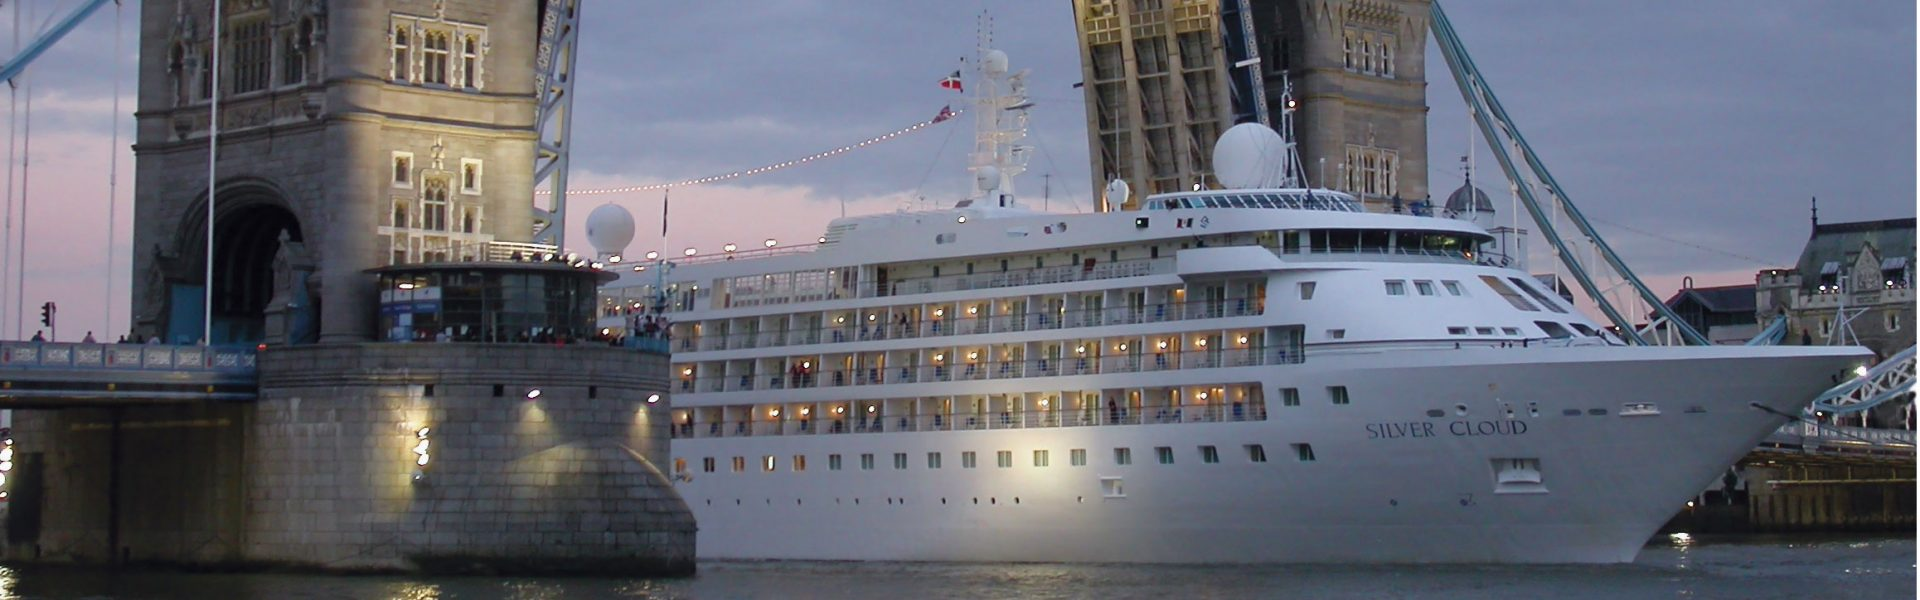 Cruise Ship in Europe SilverSeas Silver Cloud